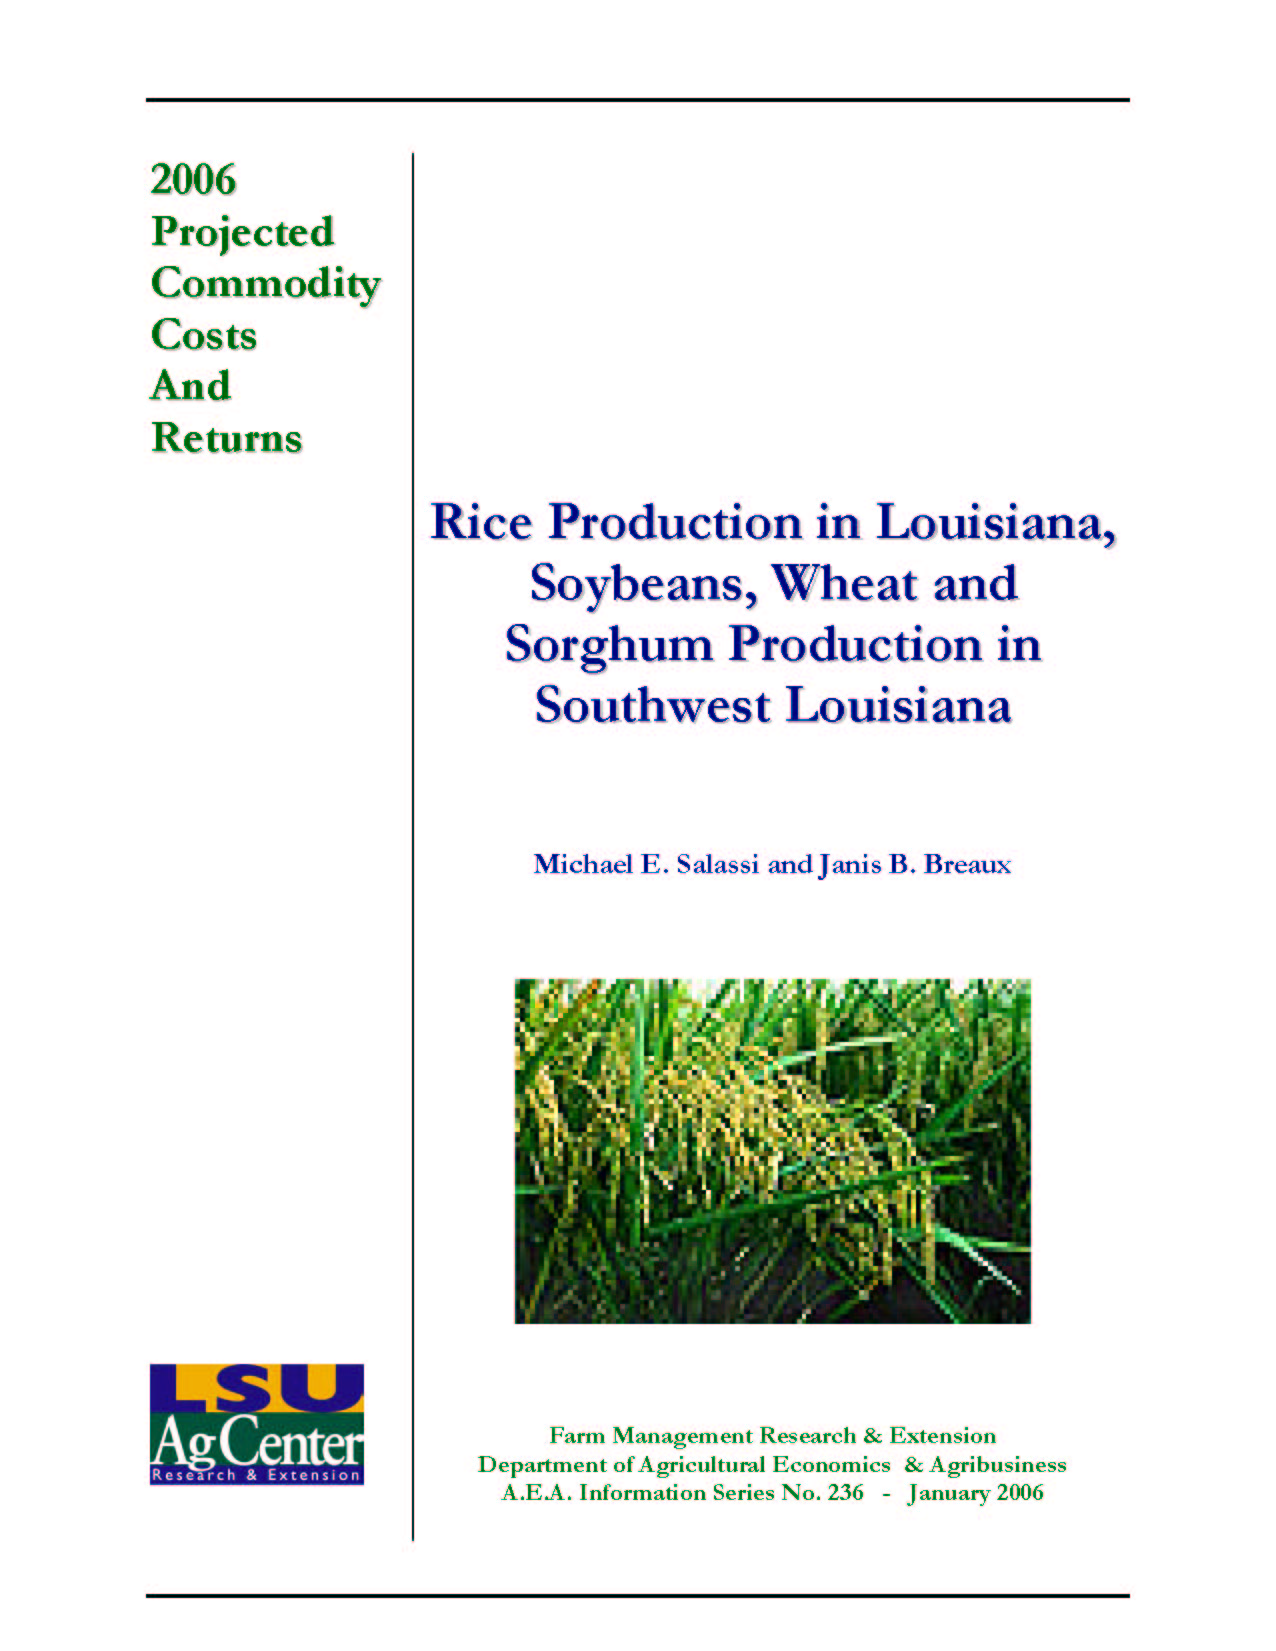 2006 Projected Louisiana Rice Production Costs